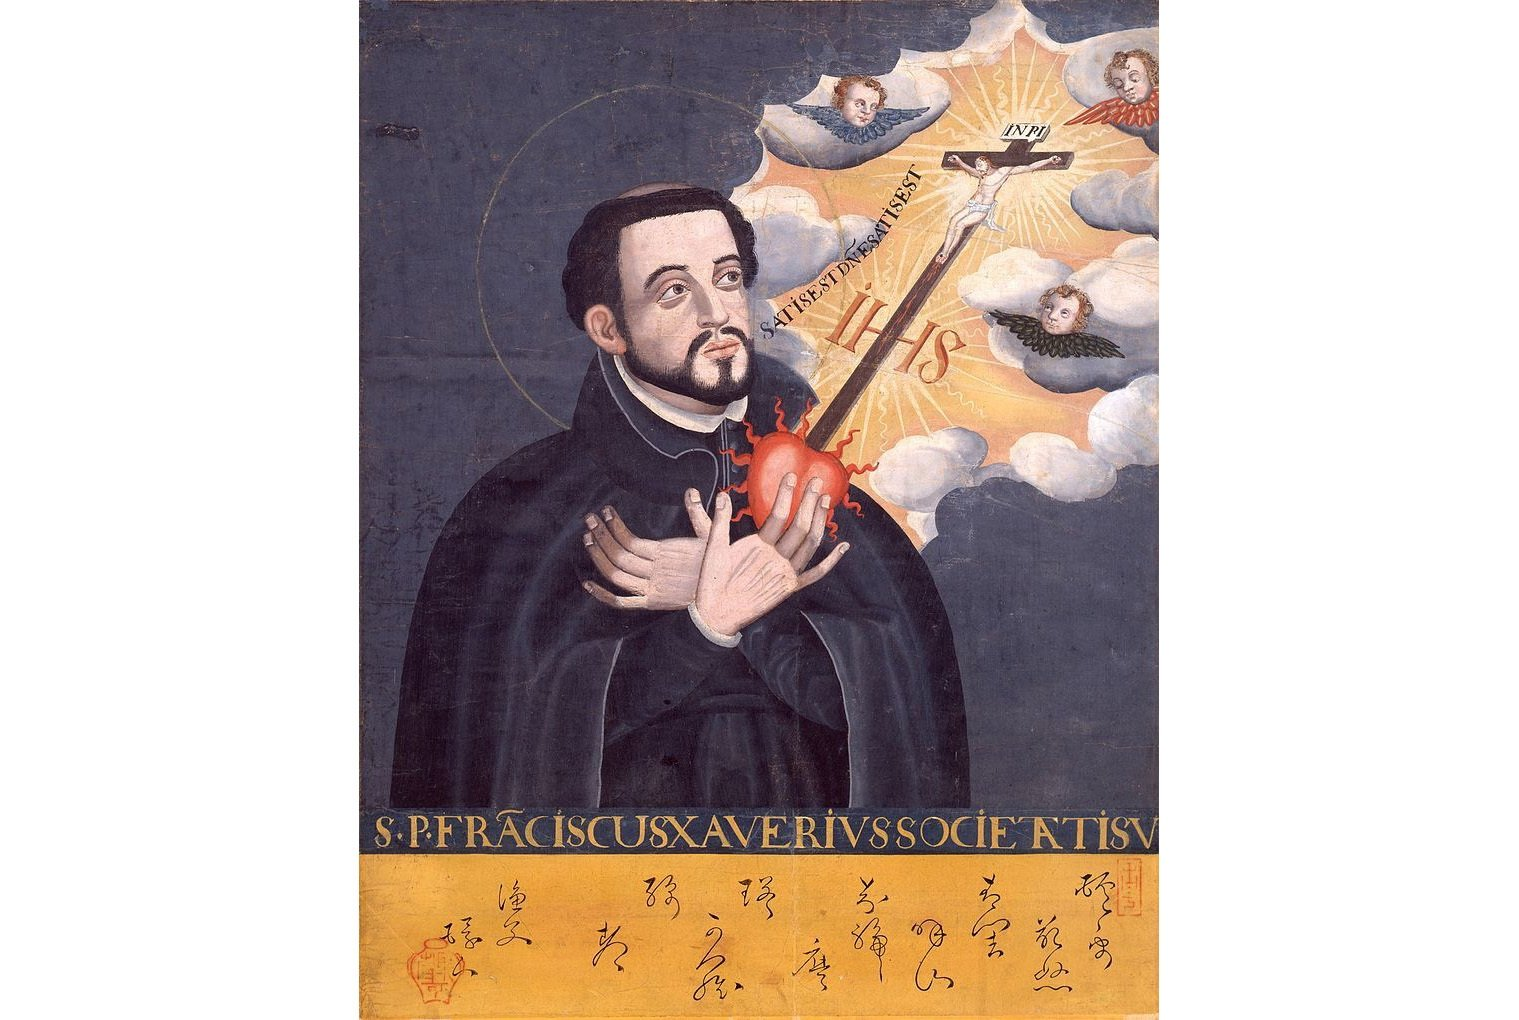 The X symbol made by Francis Xavier, one of the founders of the esoteric Jesuit order.